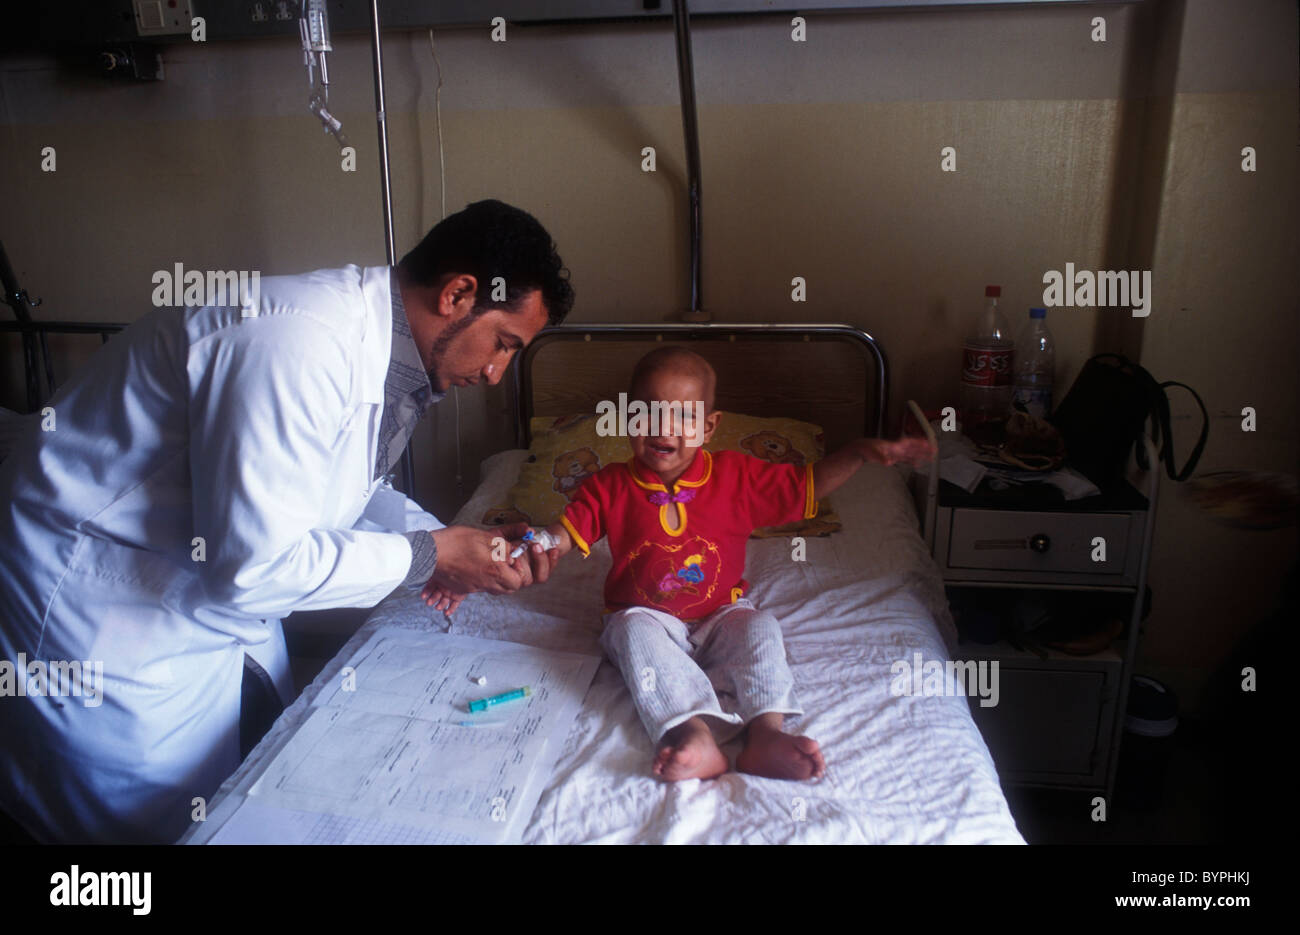 basra hospital doctor treating child with leukemia, possible causedbasra hospital doctor treating child with leukemia, possible caused by radiation poisoning